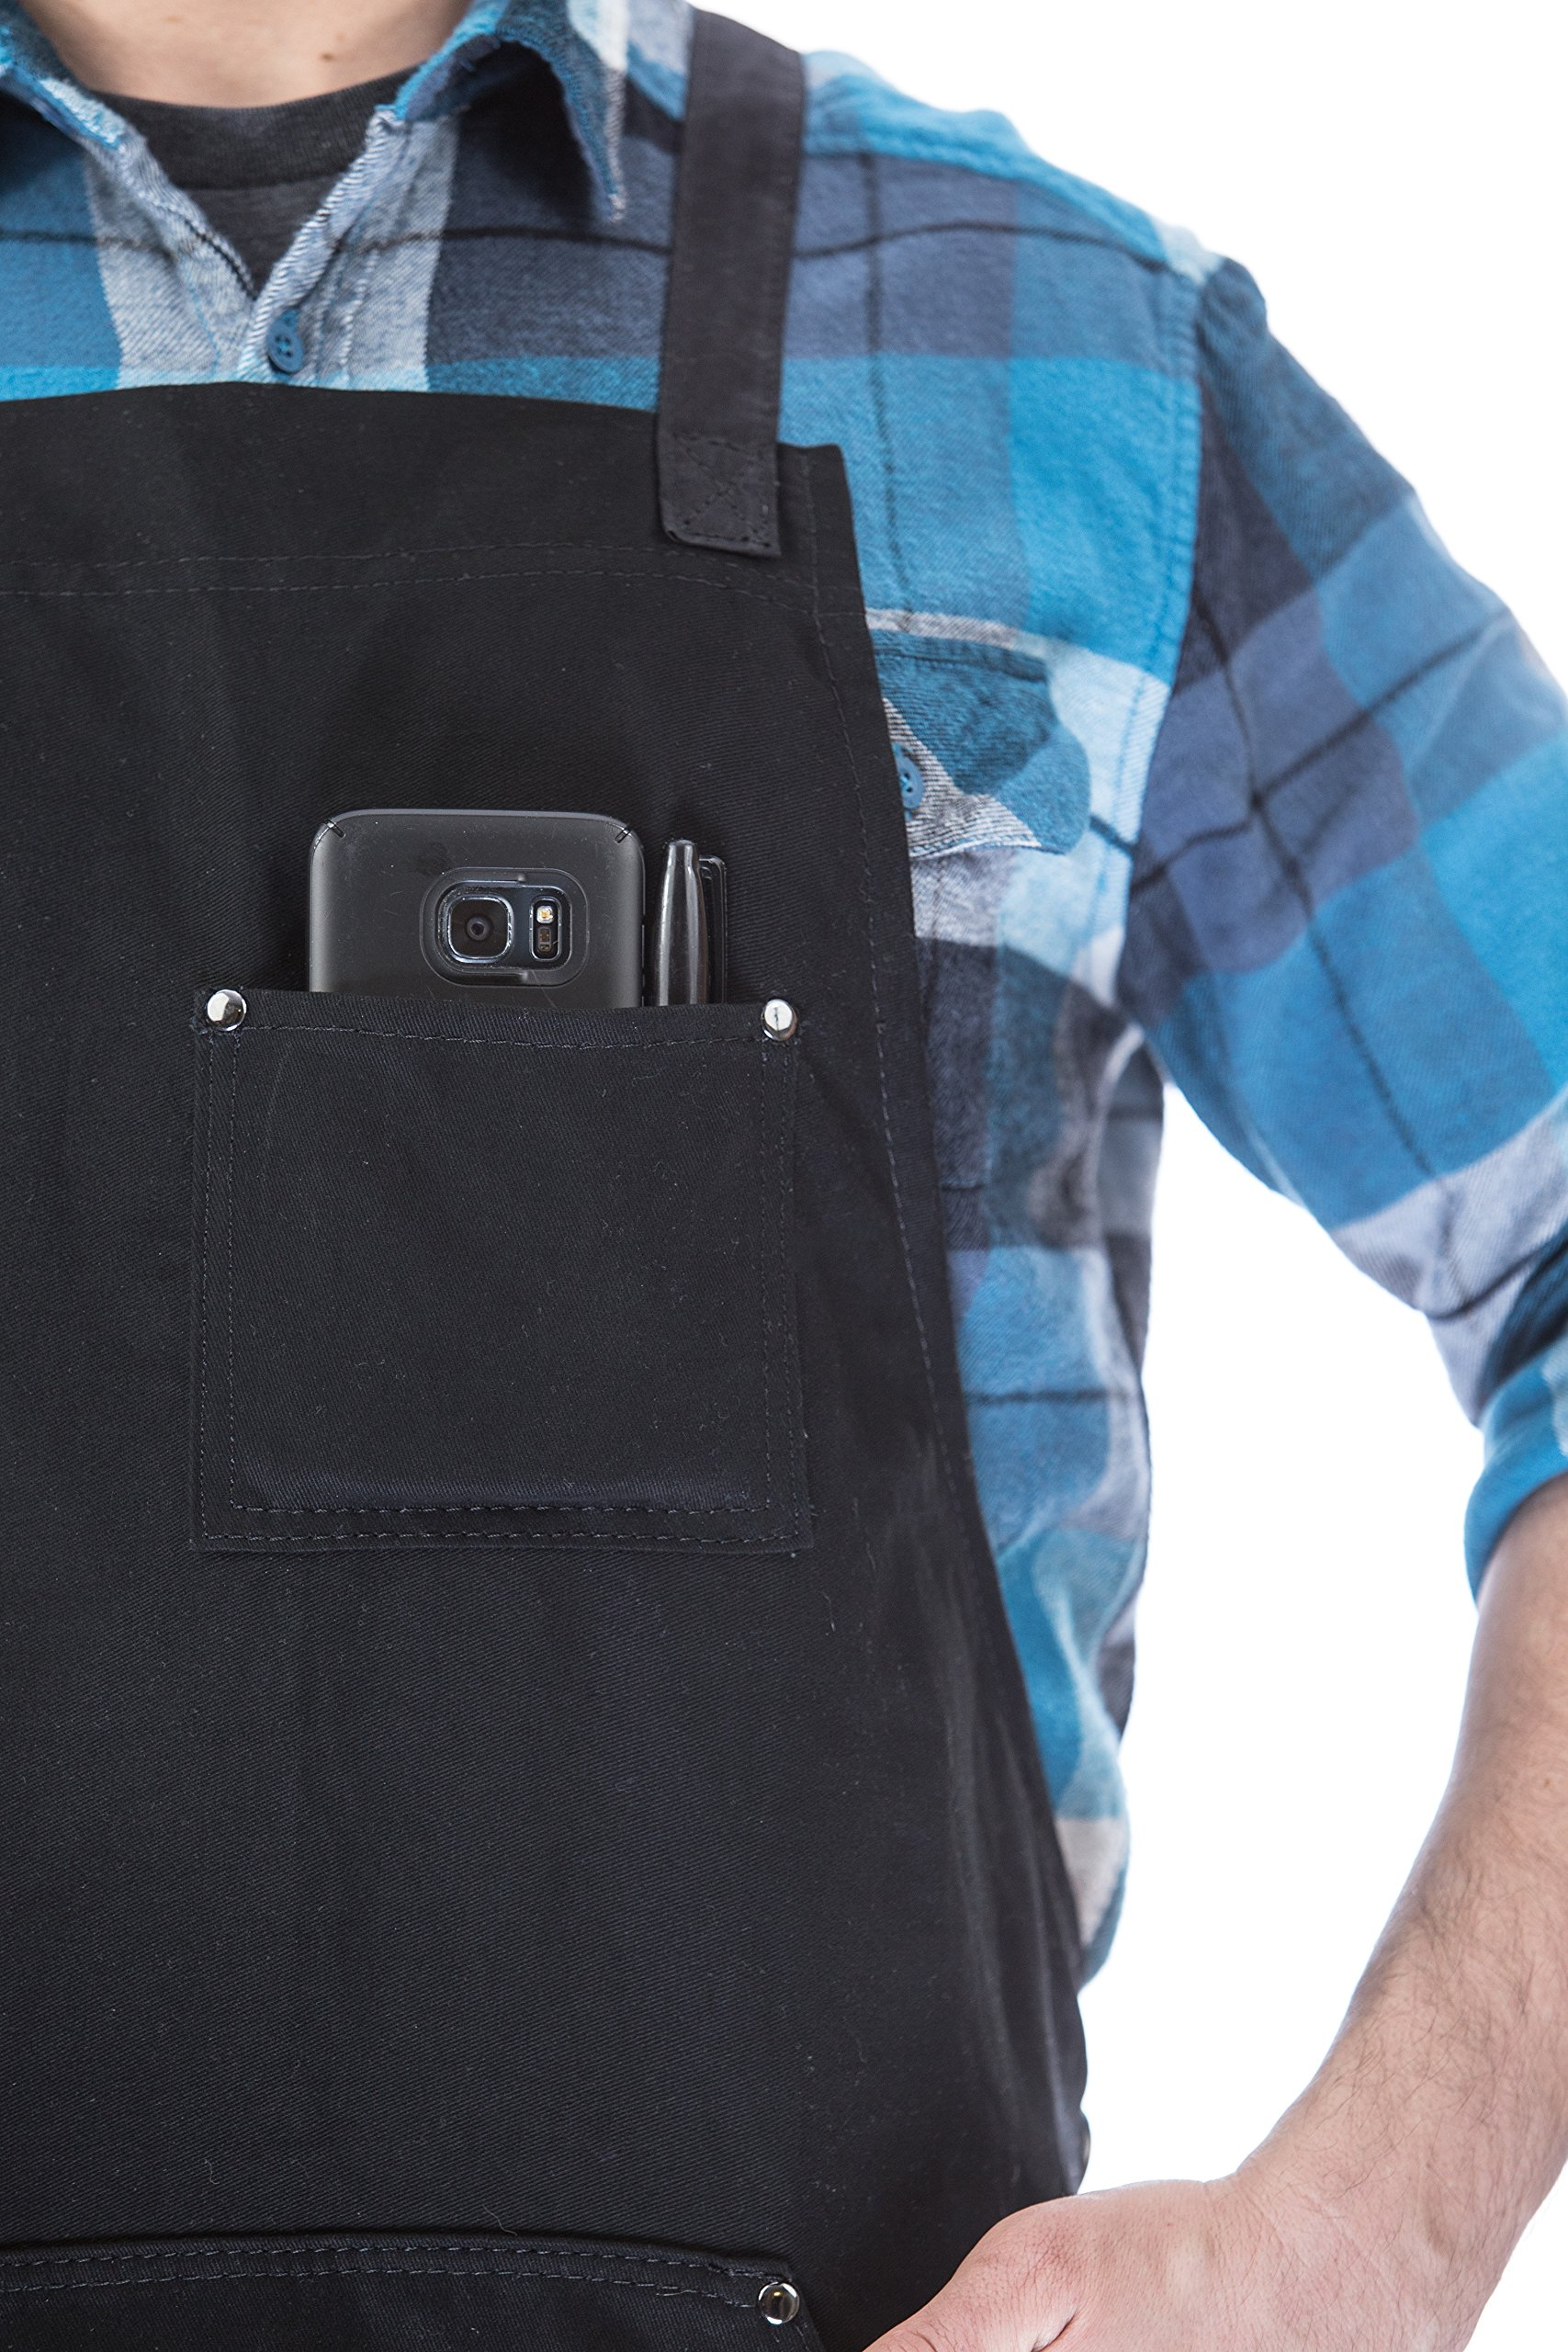 Hudson Durable Goods - Professional Grade Chef Apron for Kitchen, BBQ, and Grill (Black) with Towel Loop + Tool Pockets + Quick Release Buckle, Adjustable M to XXL by Hudson Durable Goods (Image #5)